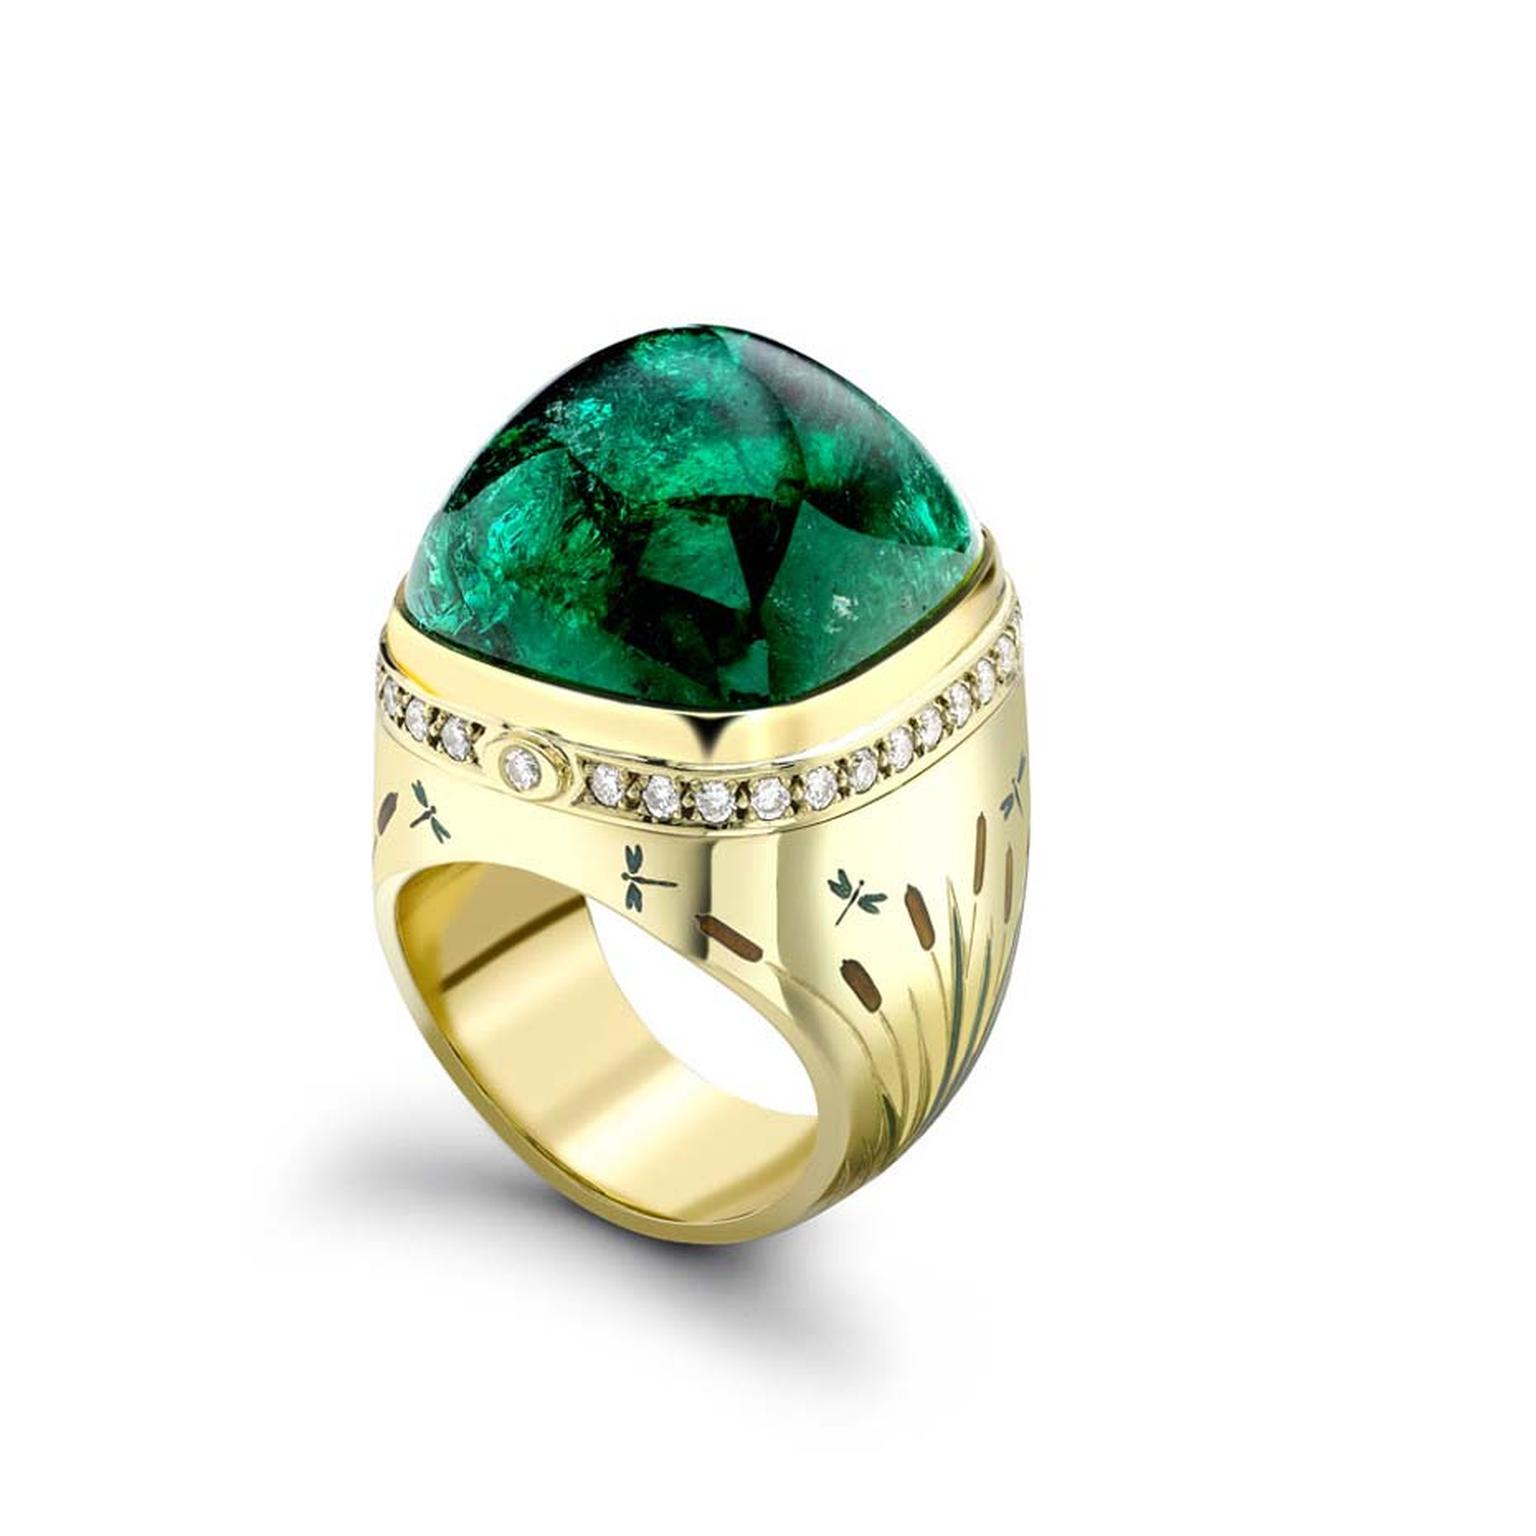 Theo Fennell yellow gold Kissing Frogs ring with a 42.66ct emerald from Gemfields' mine in Zambia.